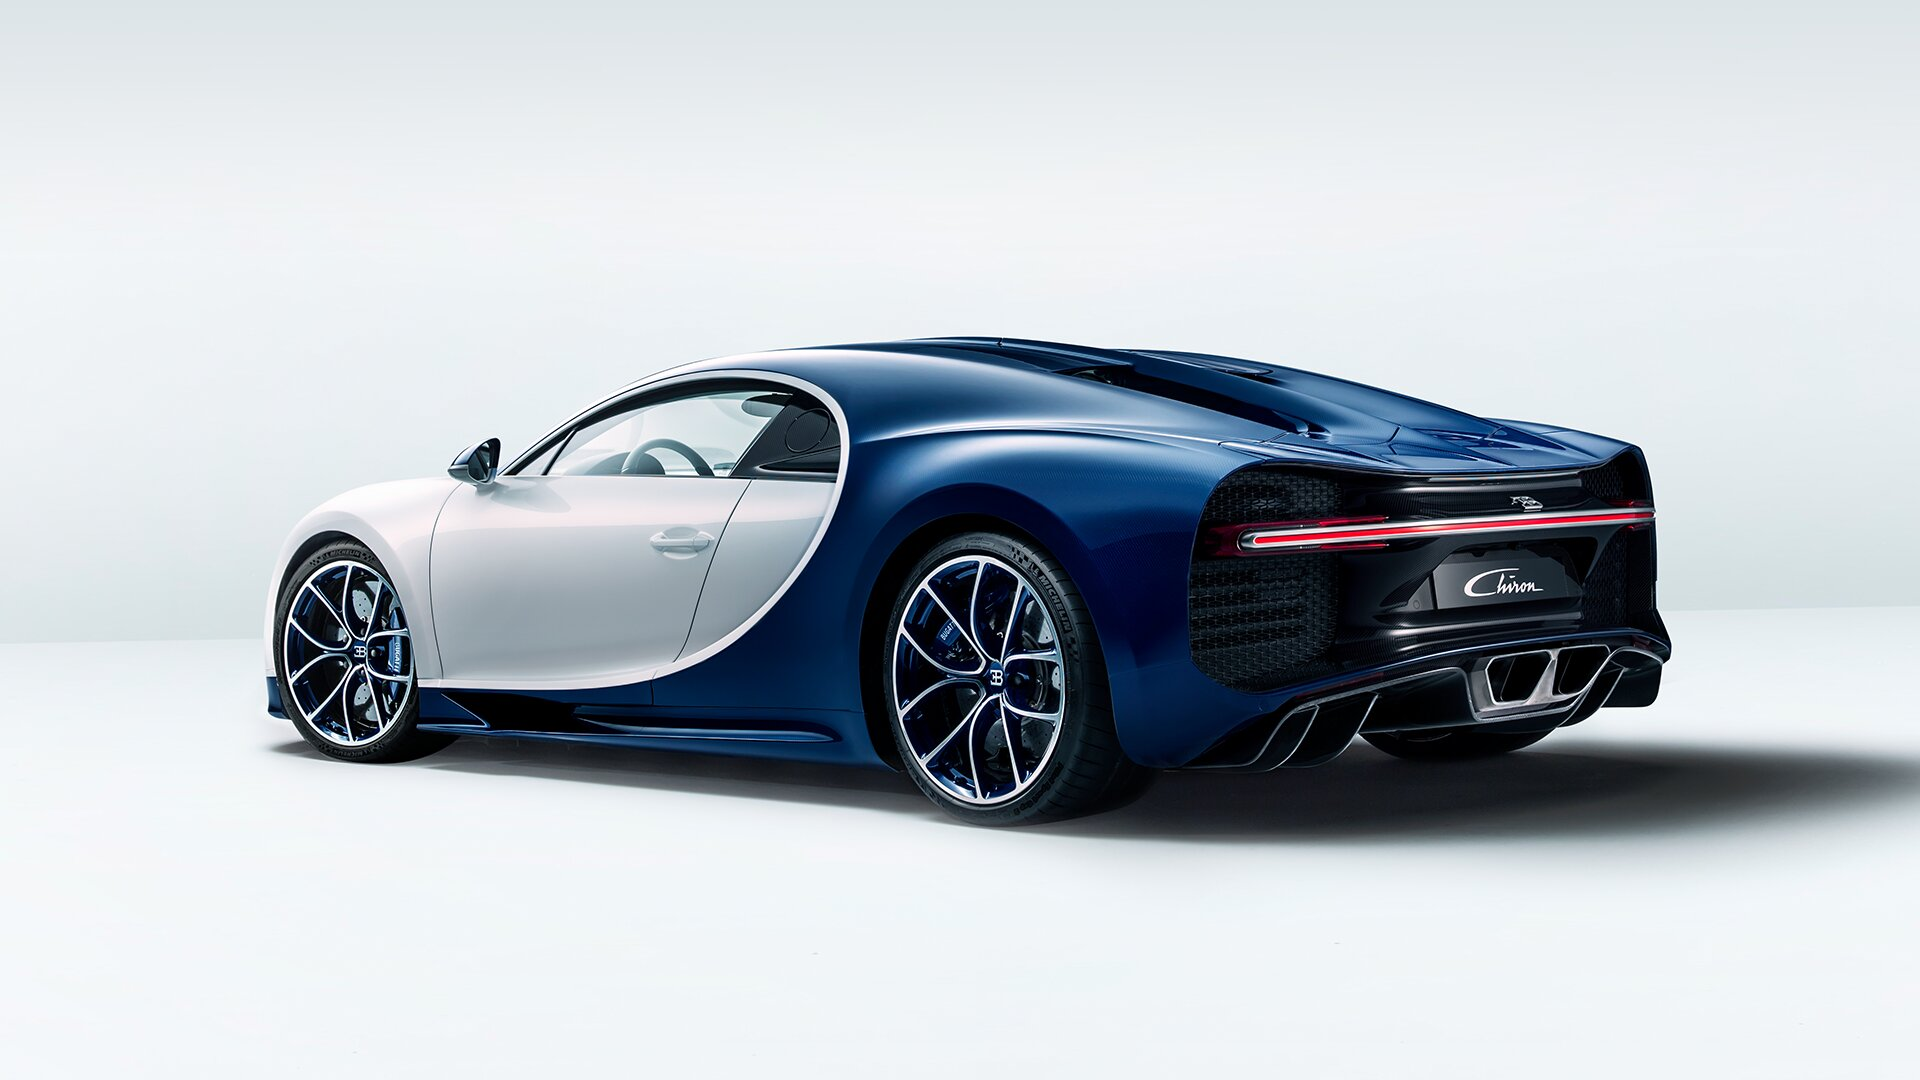 Bugatti Chiron The Luxurious Super Sports Car